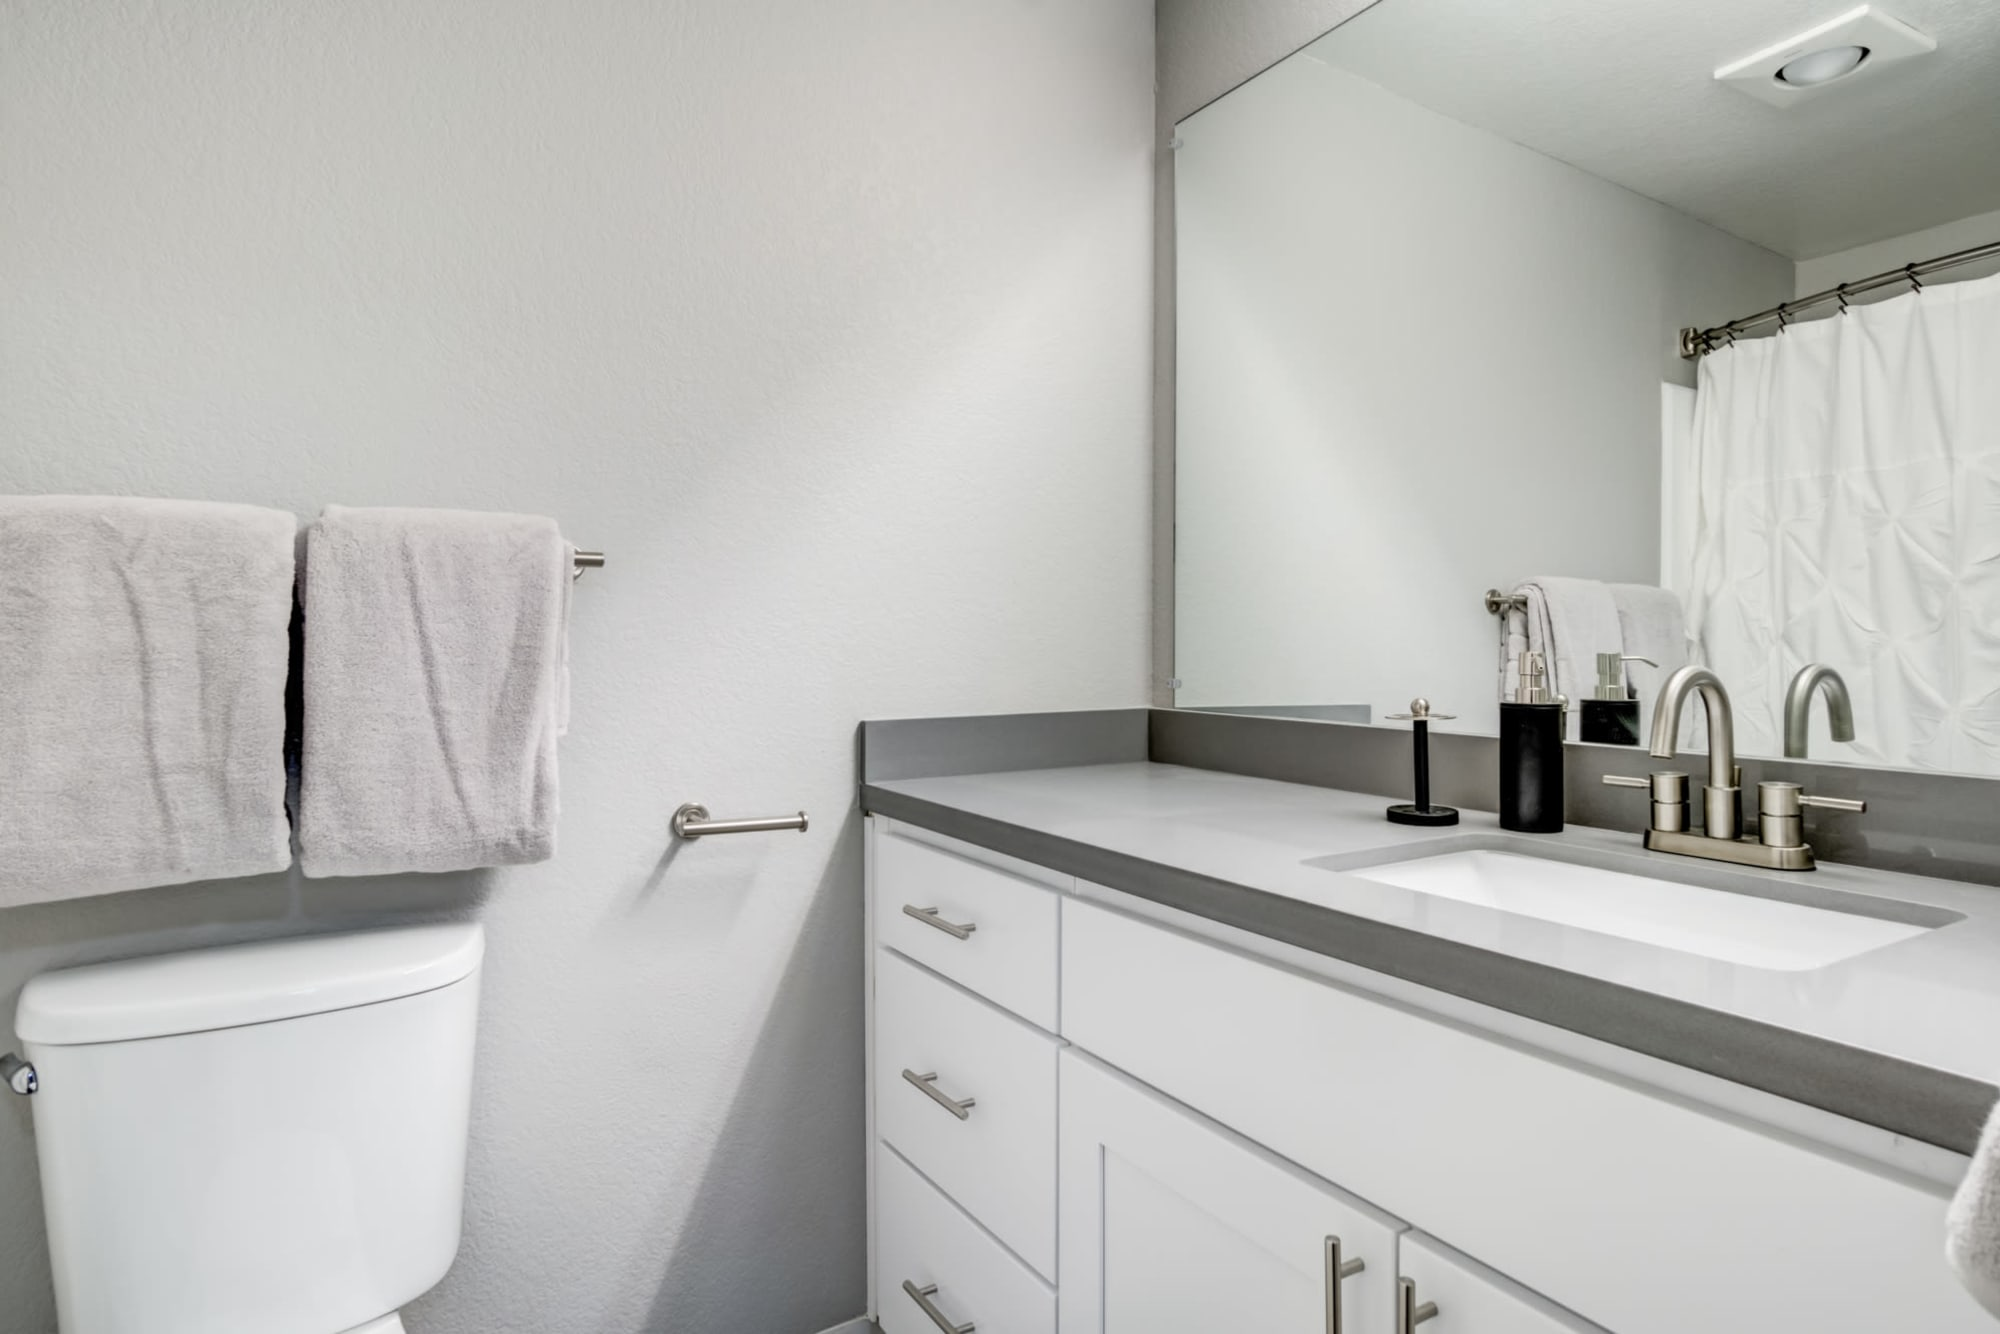 An restroom with modern style at Serramonte Ridge Apartment Homes in Daly City, California